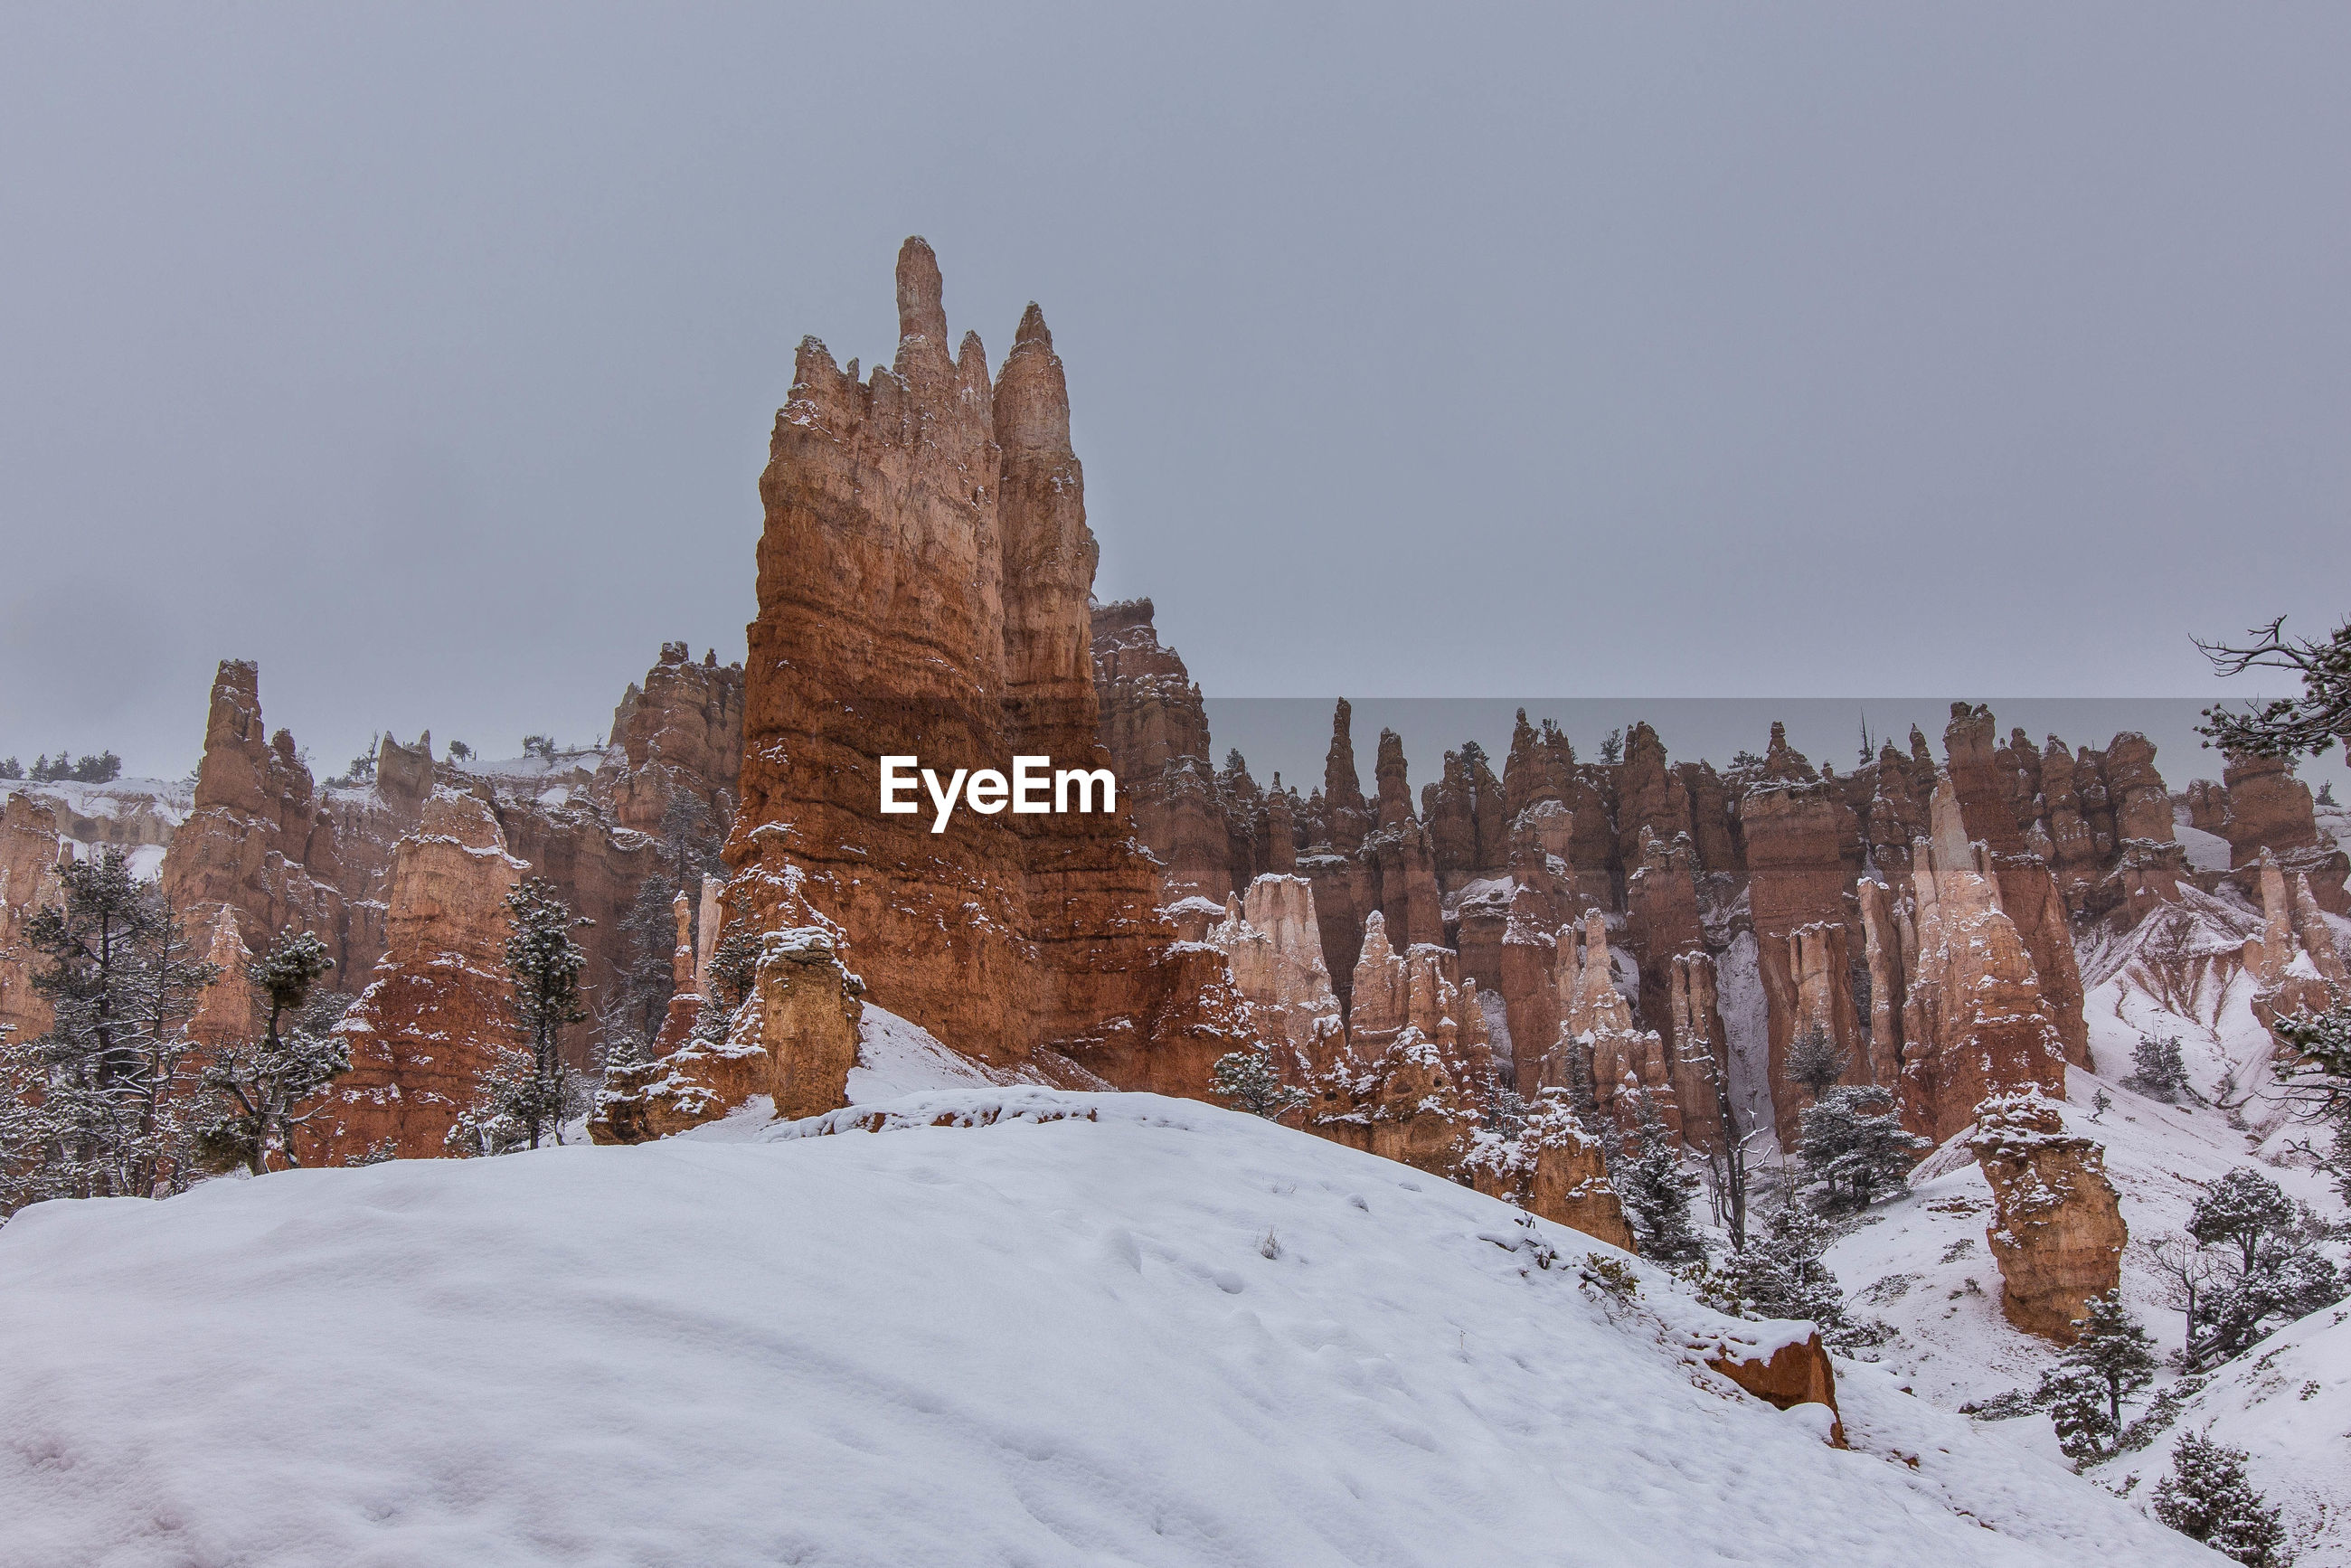 Scenic view of rock formations against sky during winter